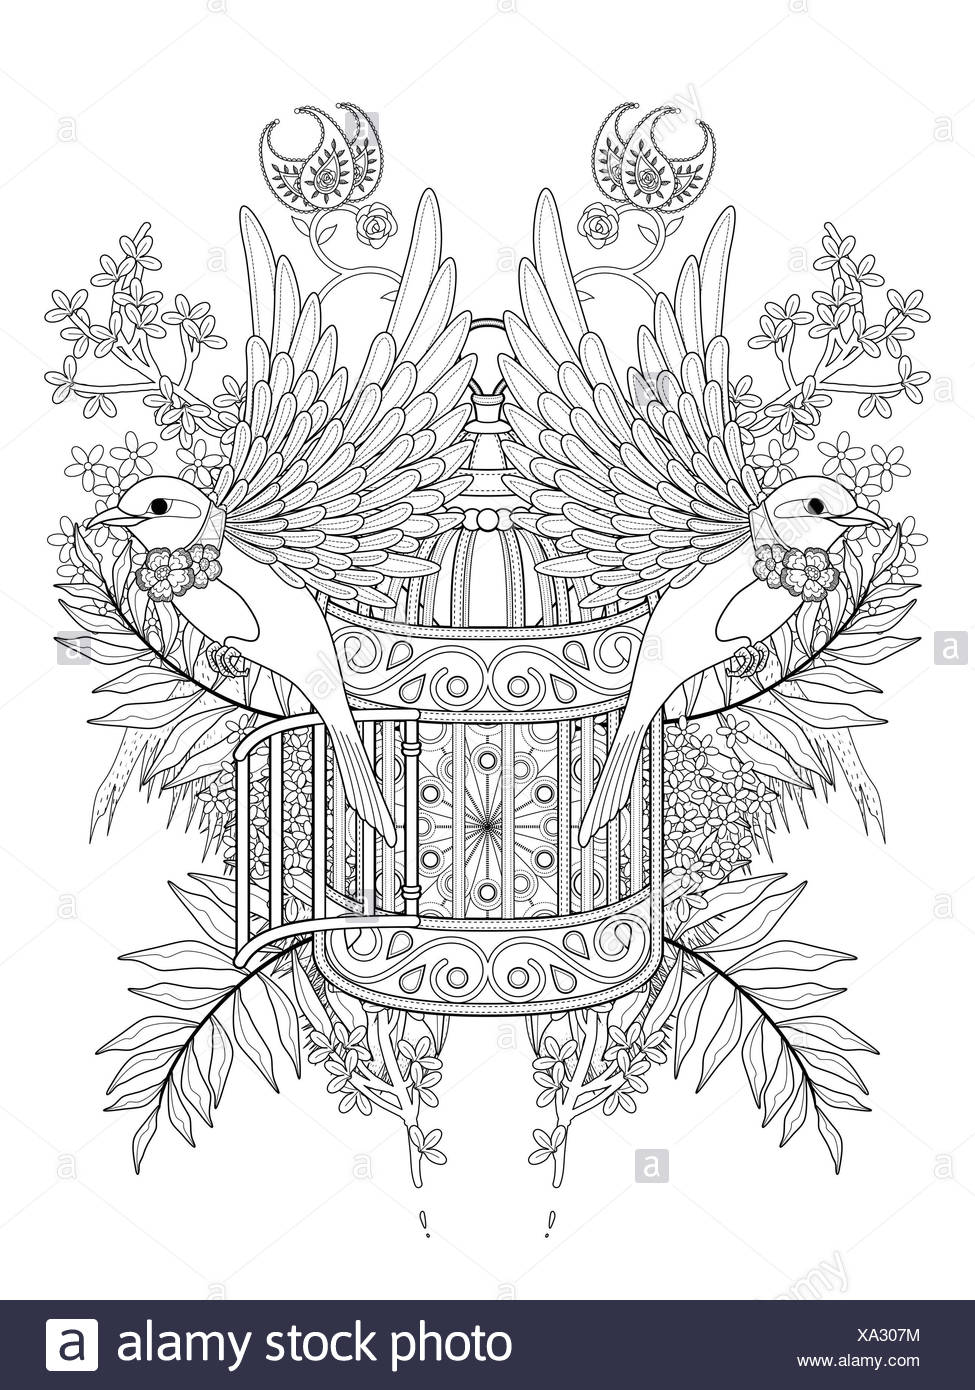 Blessing Bird Adult Coloring Page With Floral Elements